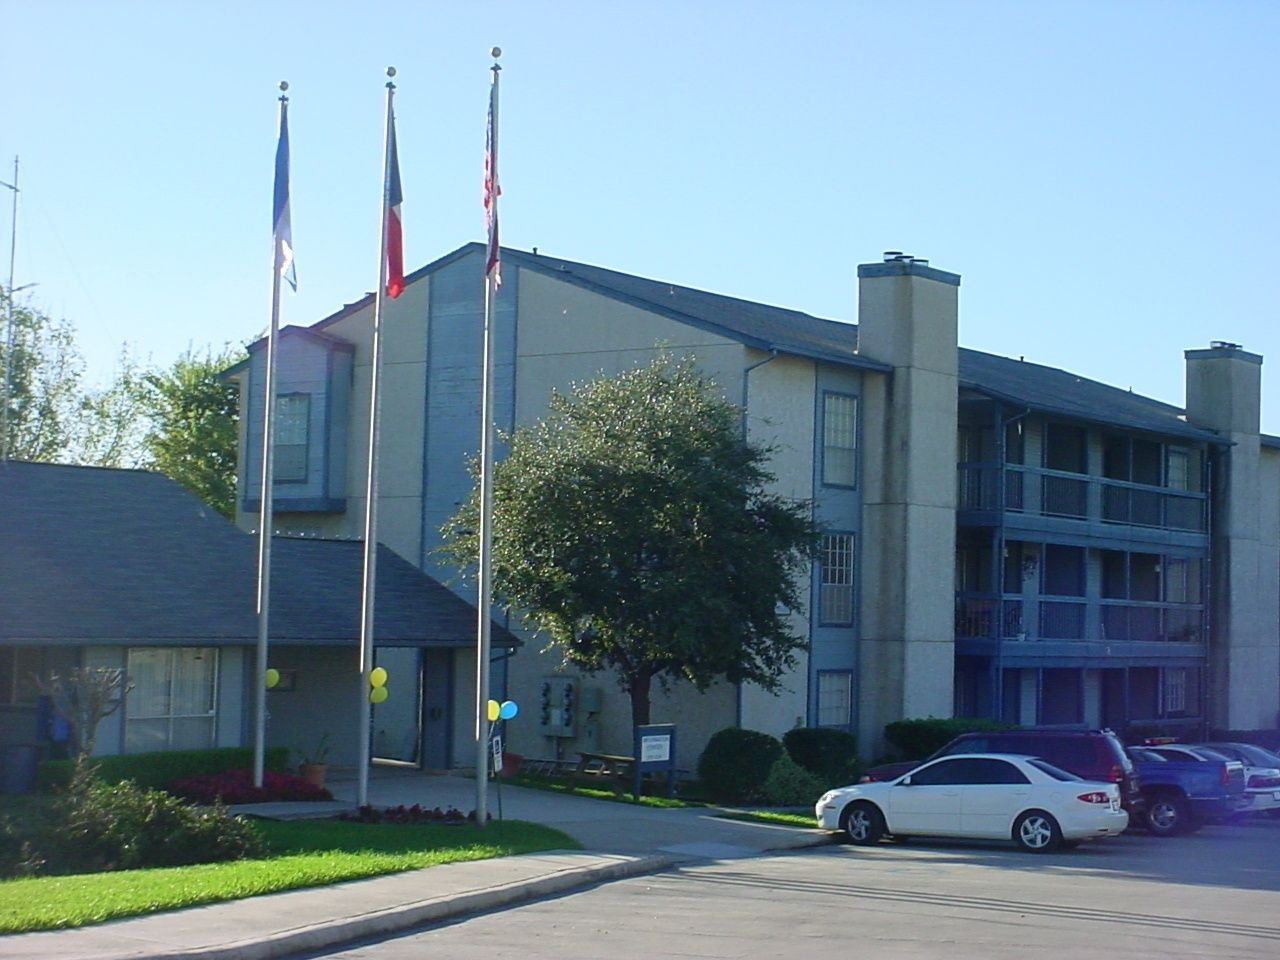 The Summit apartments in San Marcos, Texas